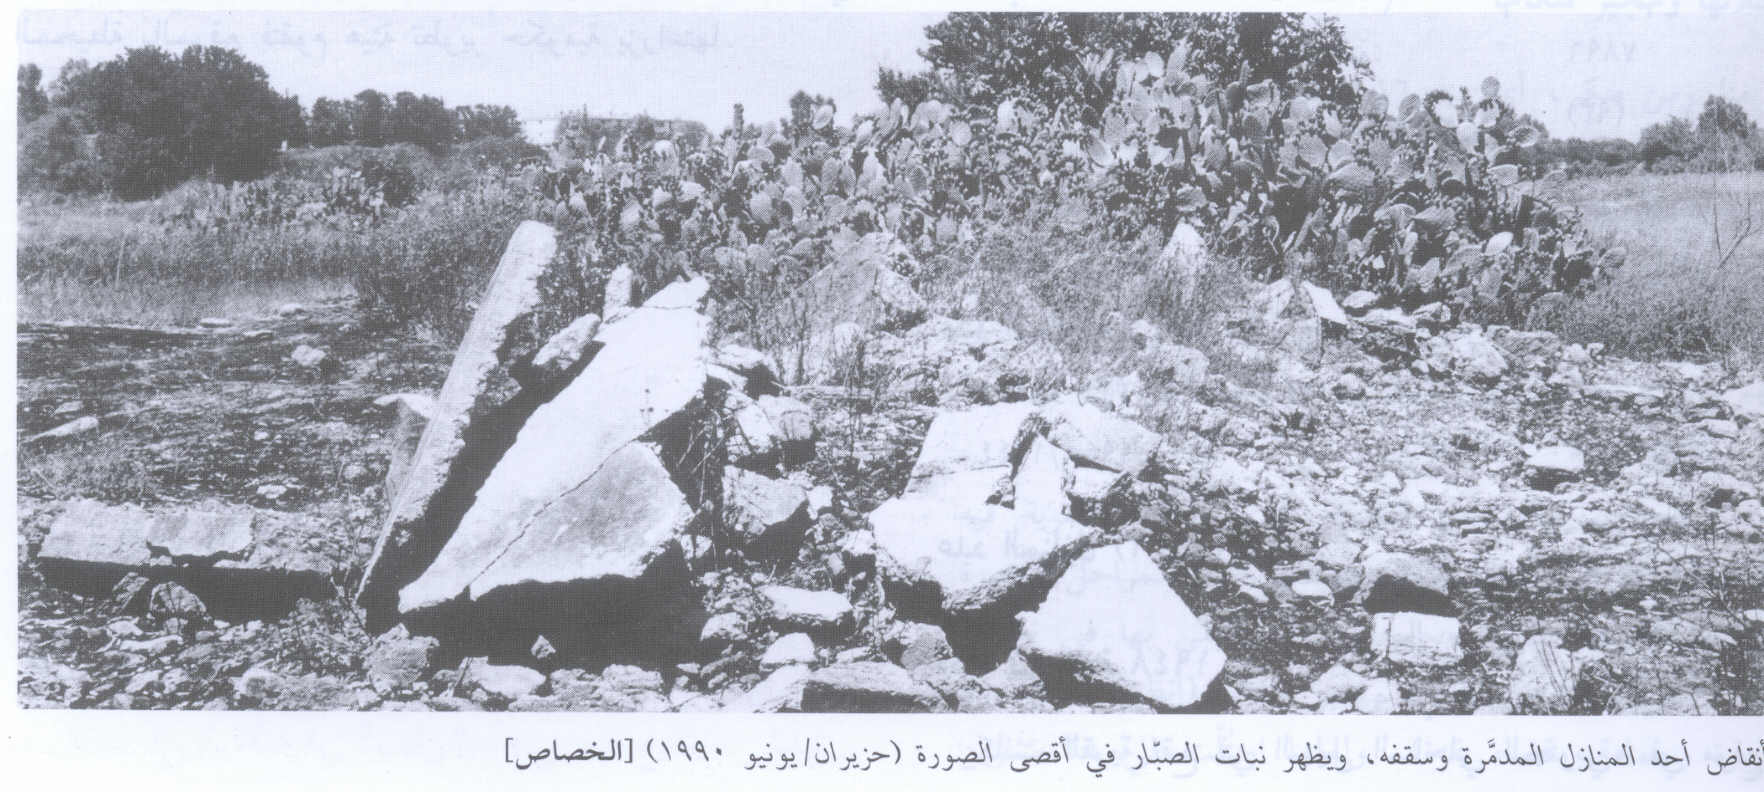 al-Khisas - خربة الخِصاص : Second View Of The Destroyed Village And It's Rubble In 1990